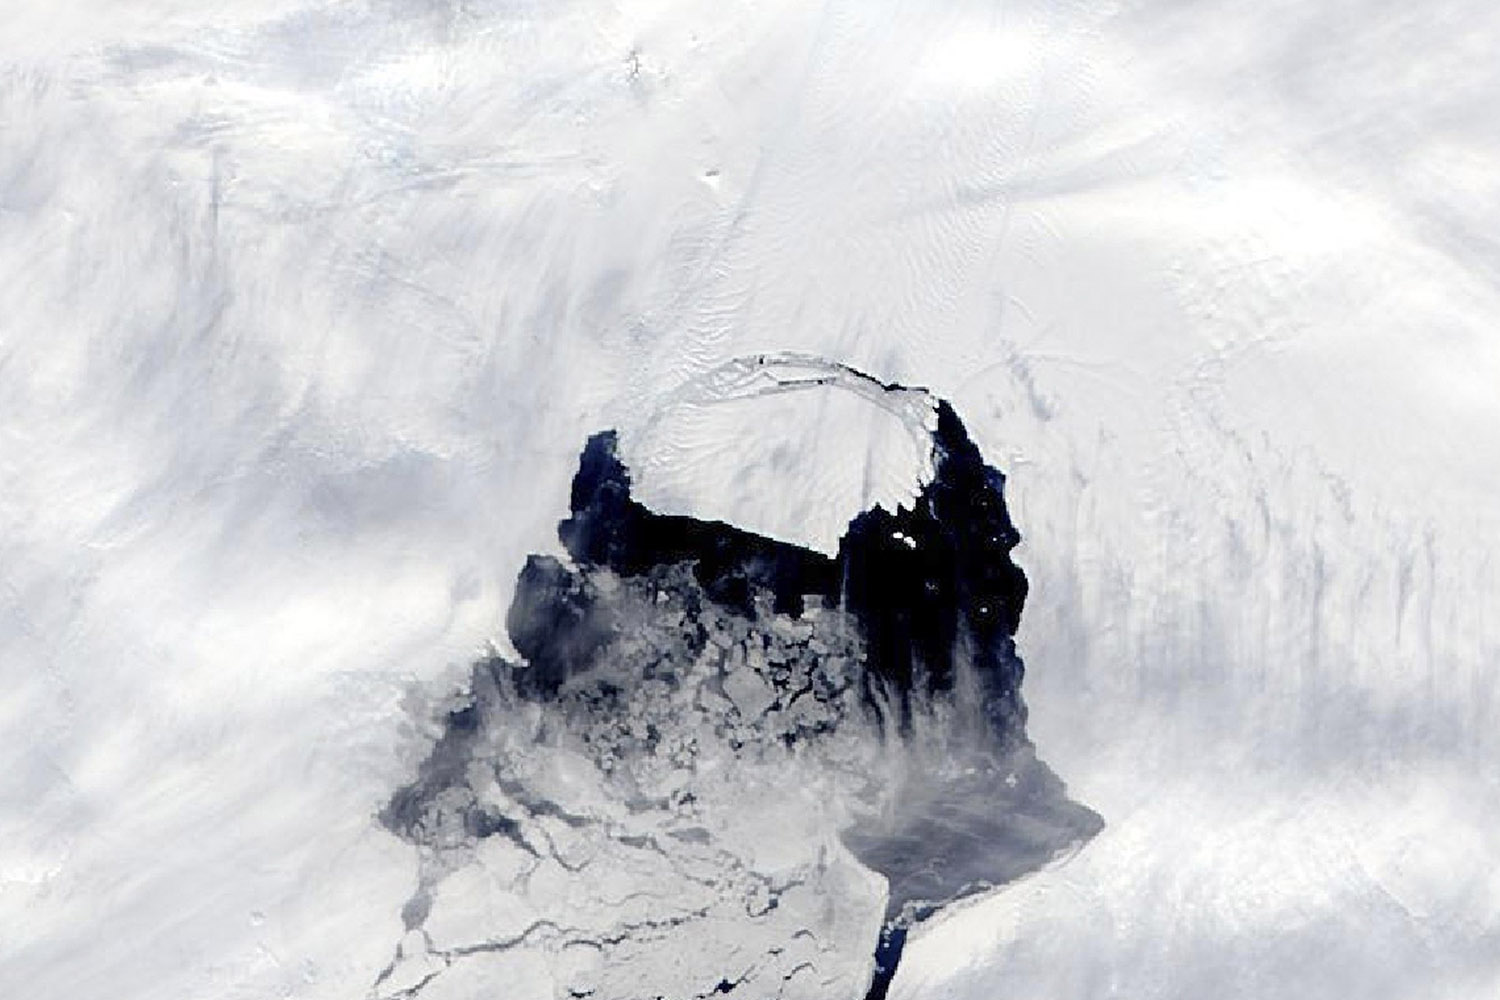 Nov. 10, 2013. In this photo provided by NASA, an iceberg which was part of the Pine Island Glacier is shown separating from the Antarctica continent.